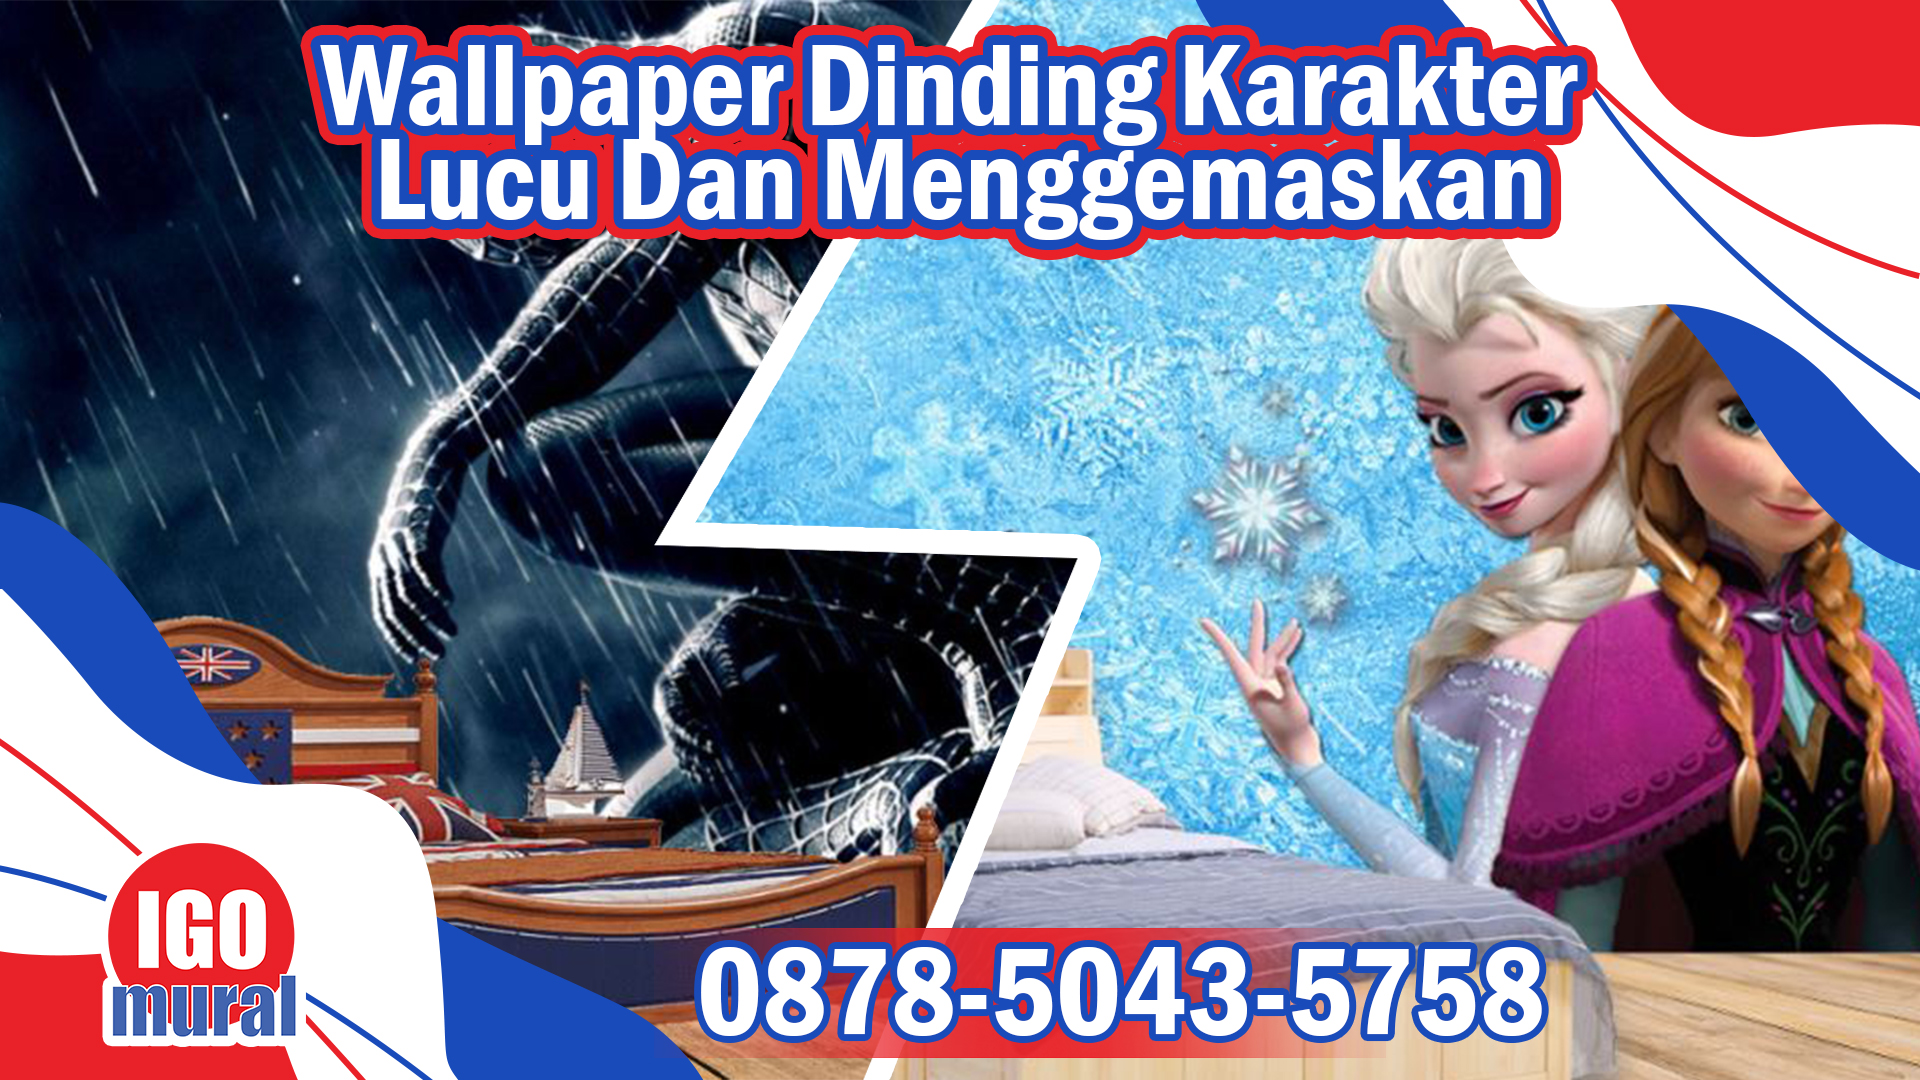 Wallpaper dinding Karakter